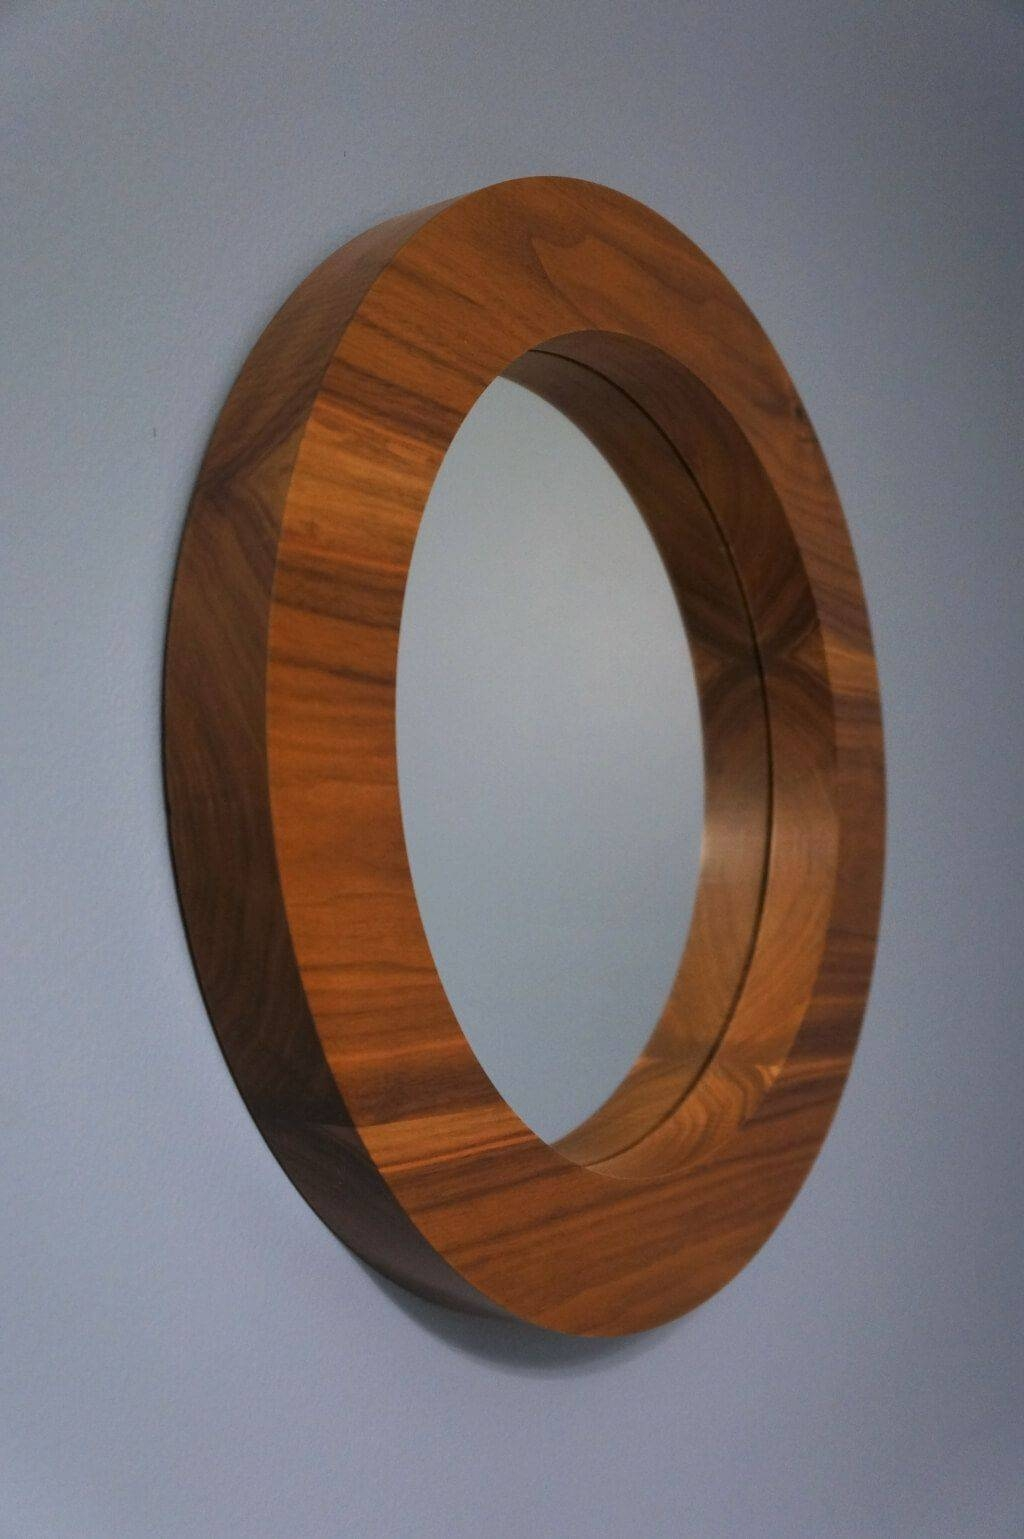 Home Decoration: Perfect Porthole Mirror Ideas For Bathroom throughout Porthole Wall Mirrors (Image 13 of 25)